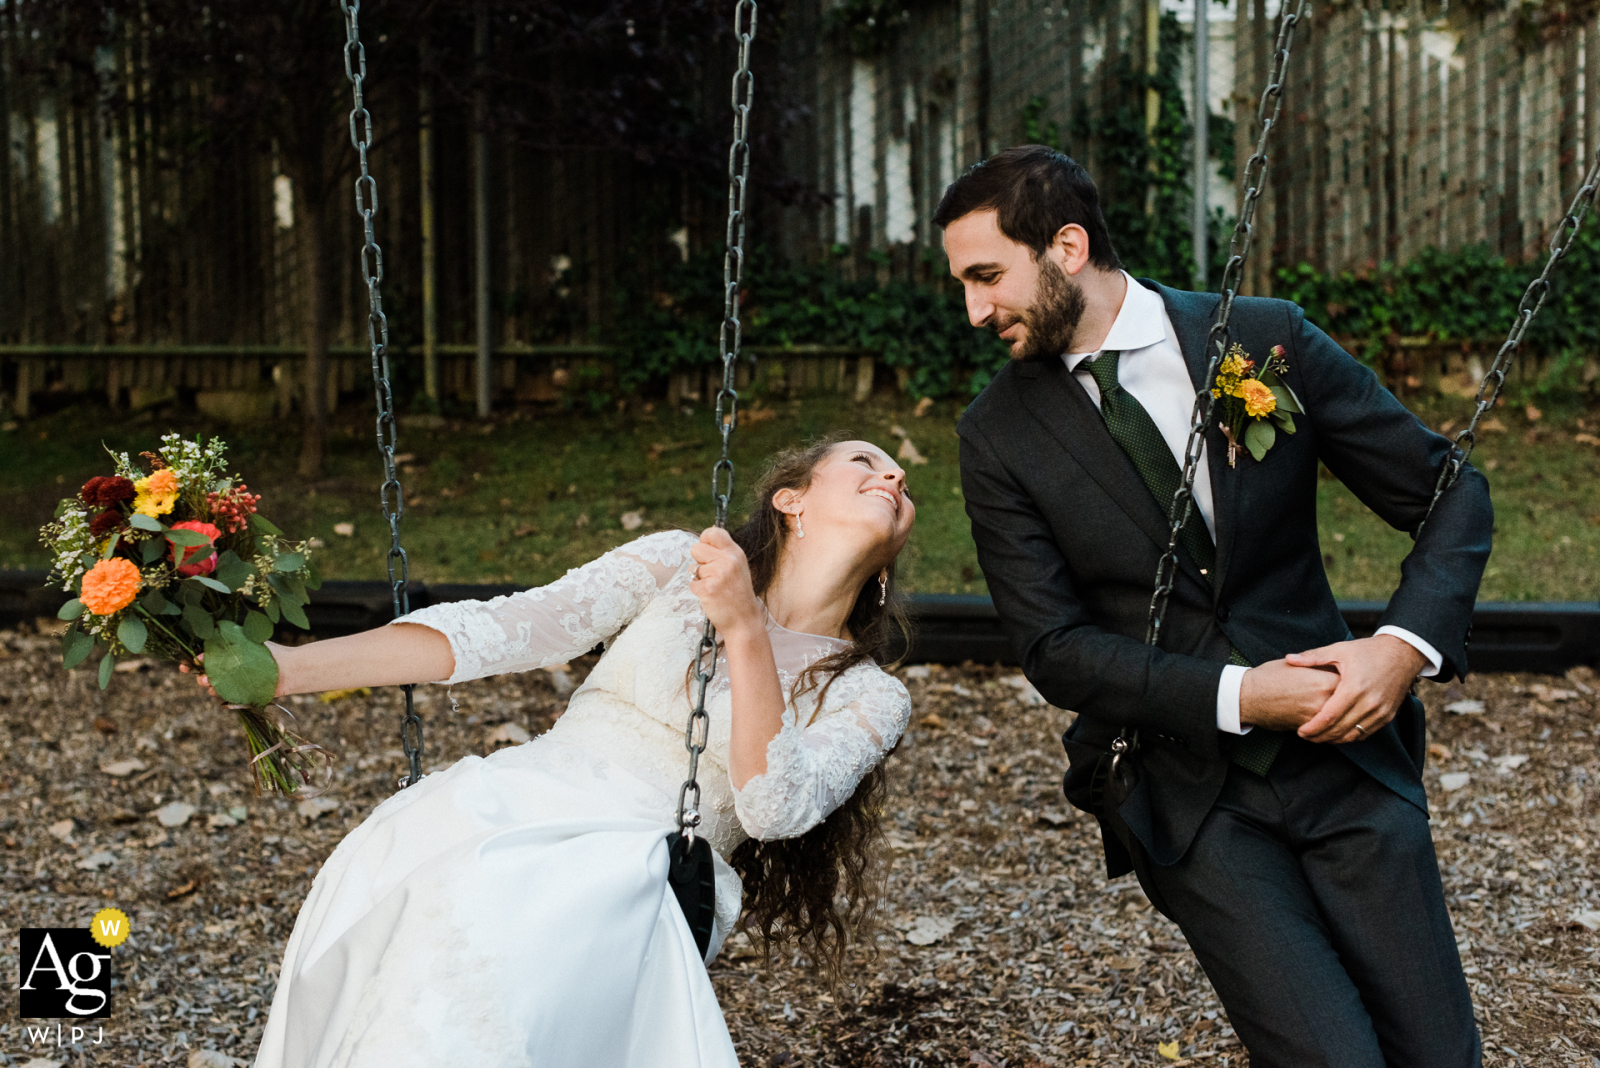 Long Island, New York, city park fine art wedding couple portrait of Two newlyweds playfully looking at each other as they swing on playground park swings